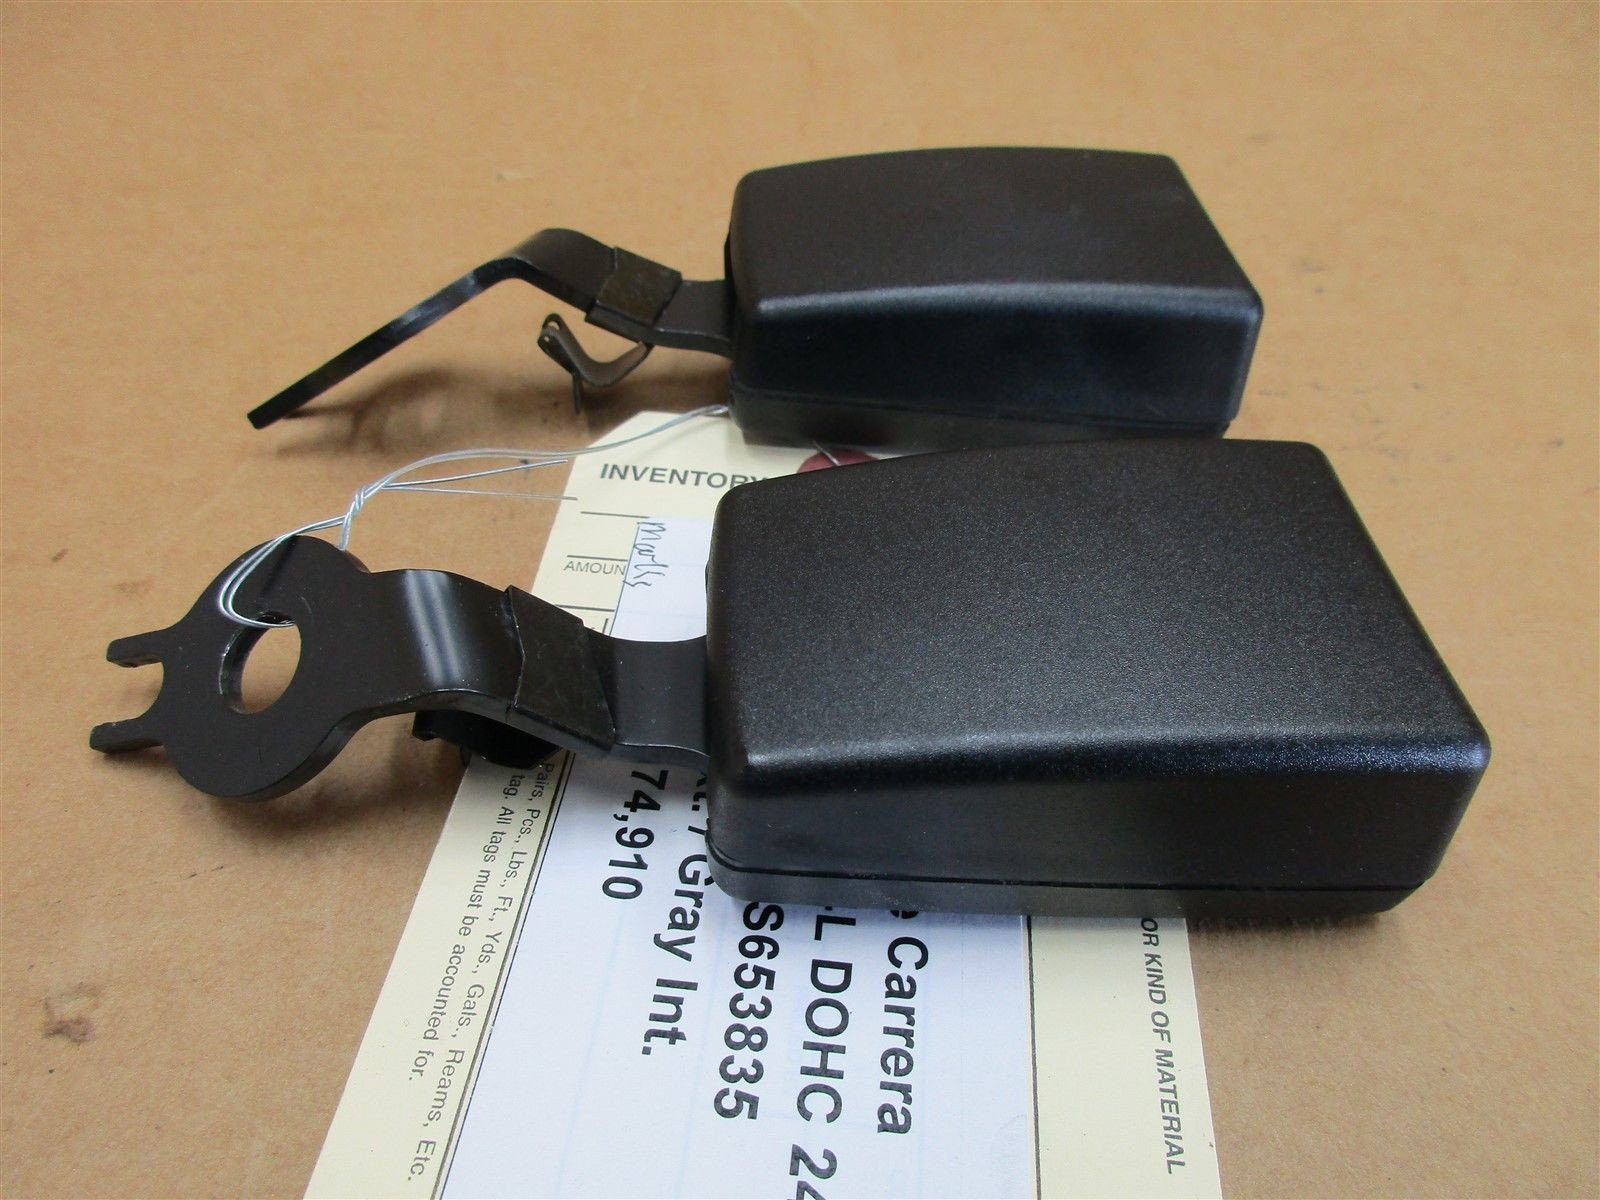 01 Carrera 911 Porsche 996 Cabrio 2 REAR SEAT BELT RECEIVERS 99680316500 74,910